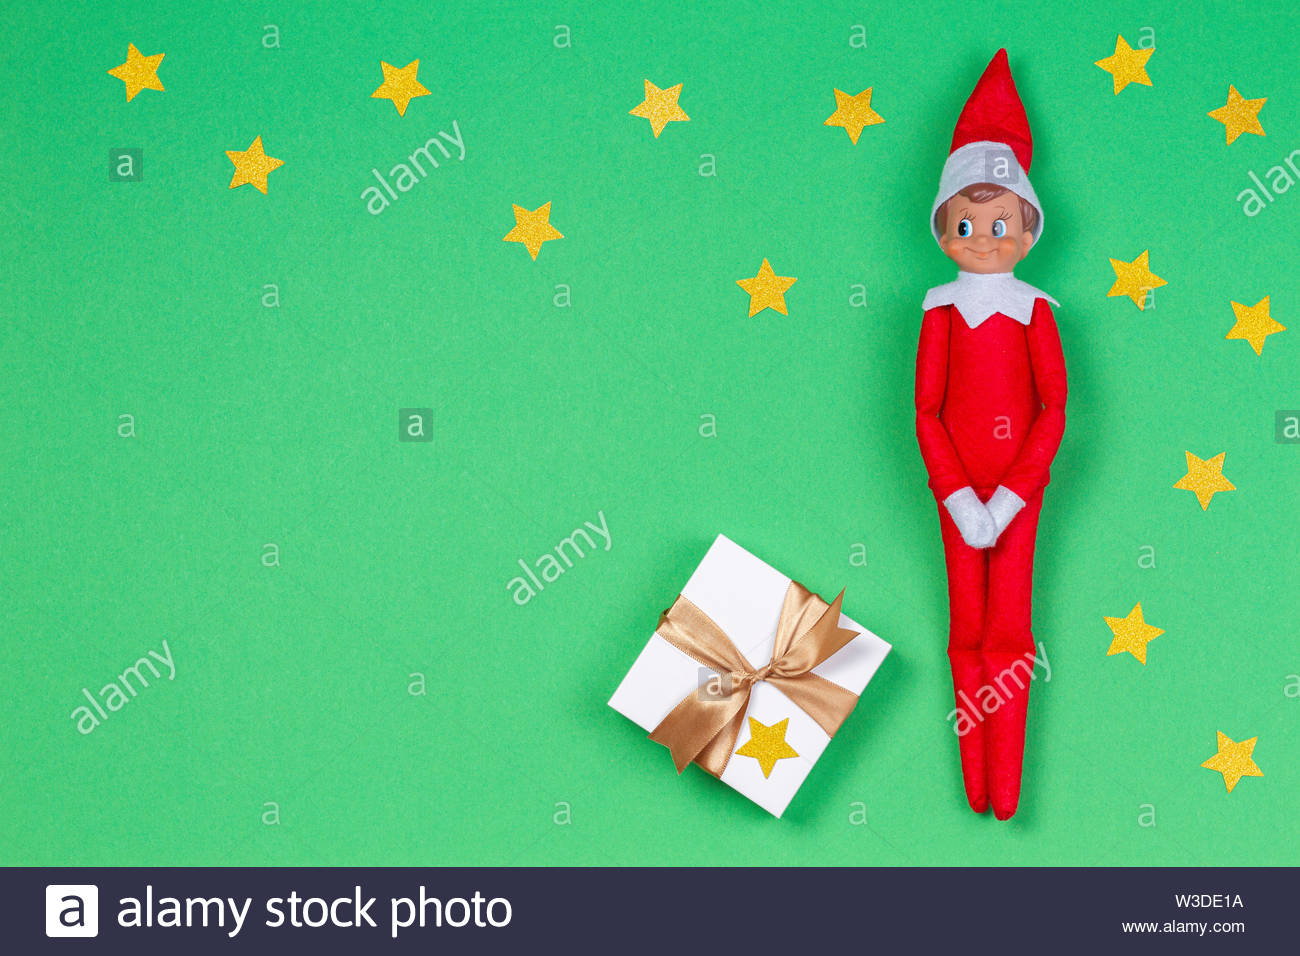 Christmas background. Toy elf and white present box with ribbon on light green background - Stock Image